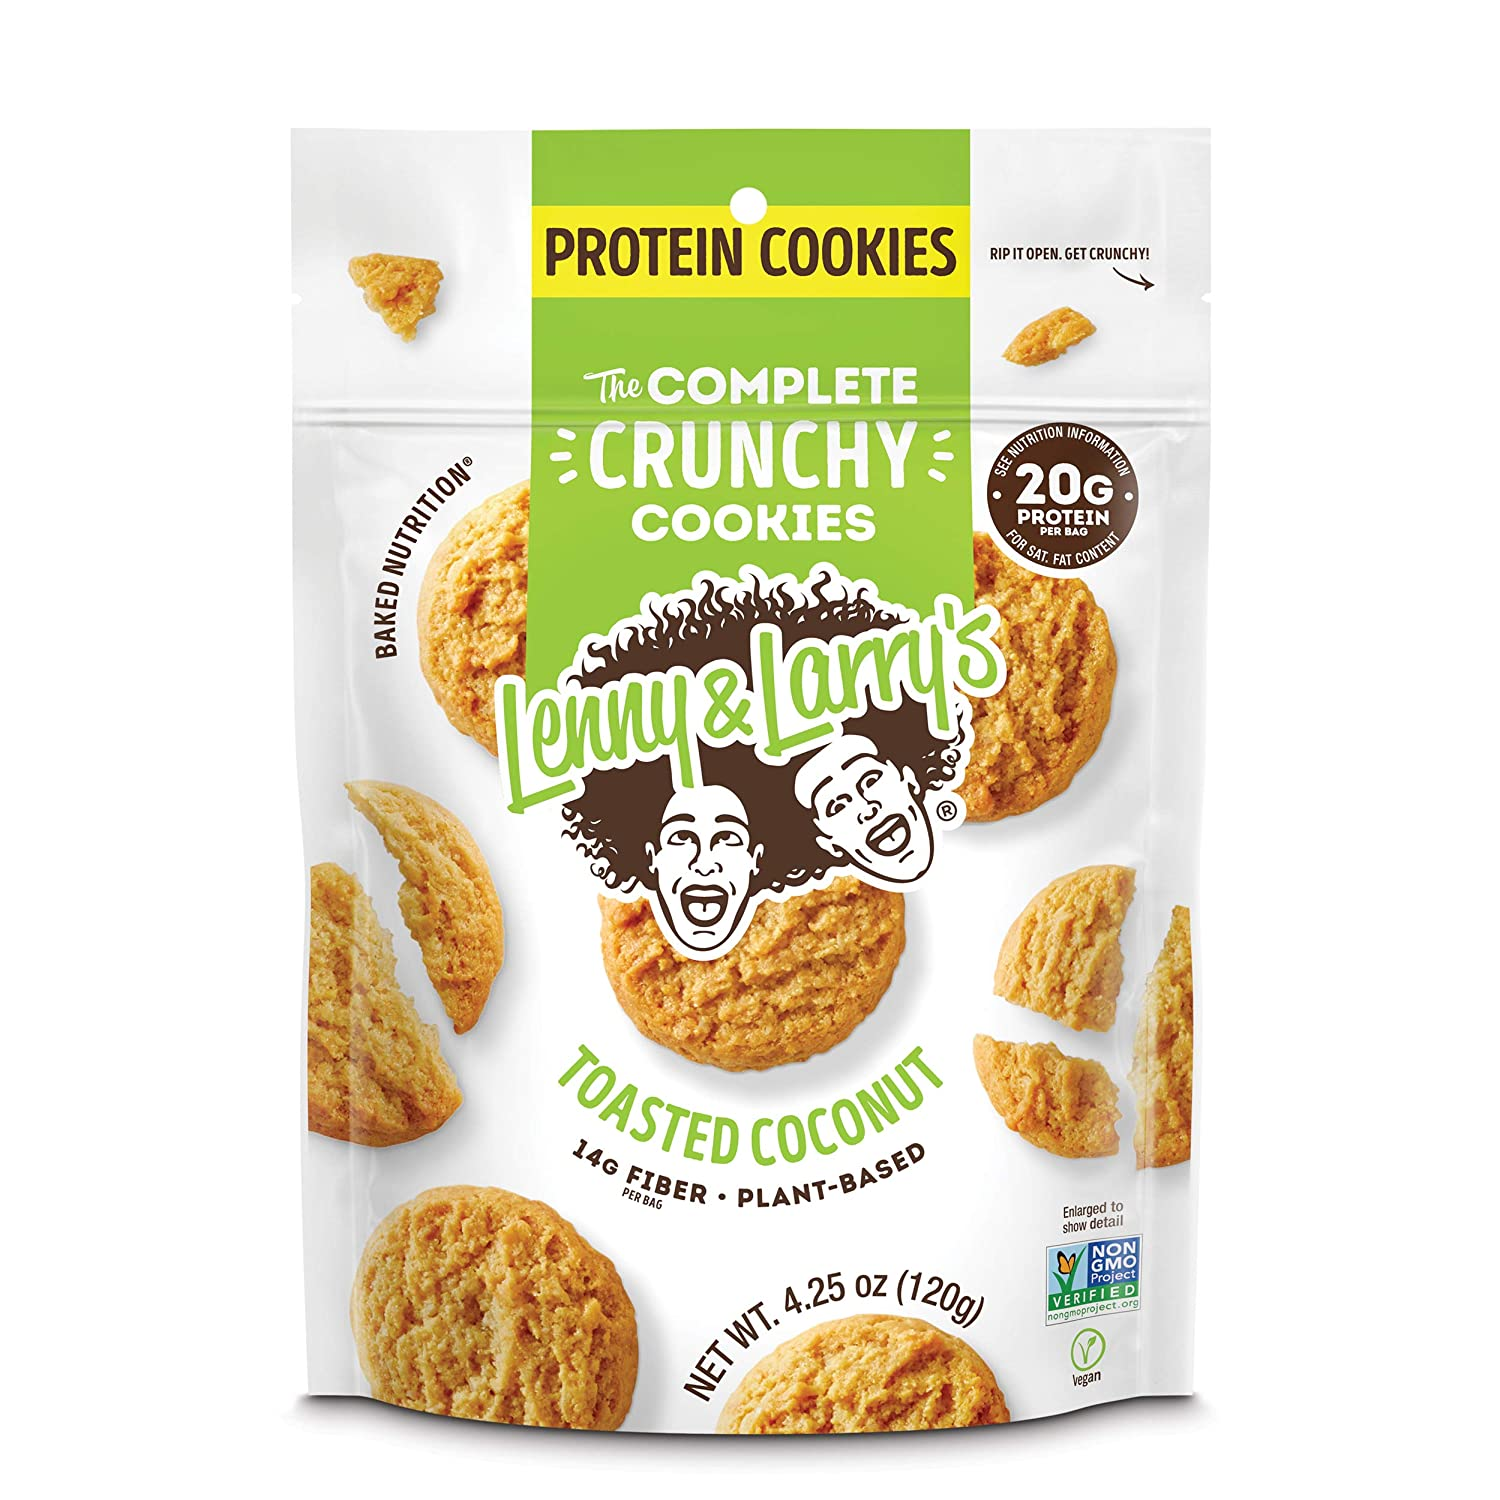 Lenny & Larry's The Complete Crunchy Cookies, Toasted Coconut, 20g Vegan Protein, 4.25oz Multi Serve Bag, 6 Count